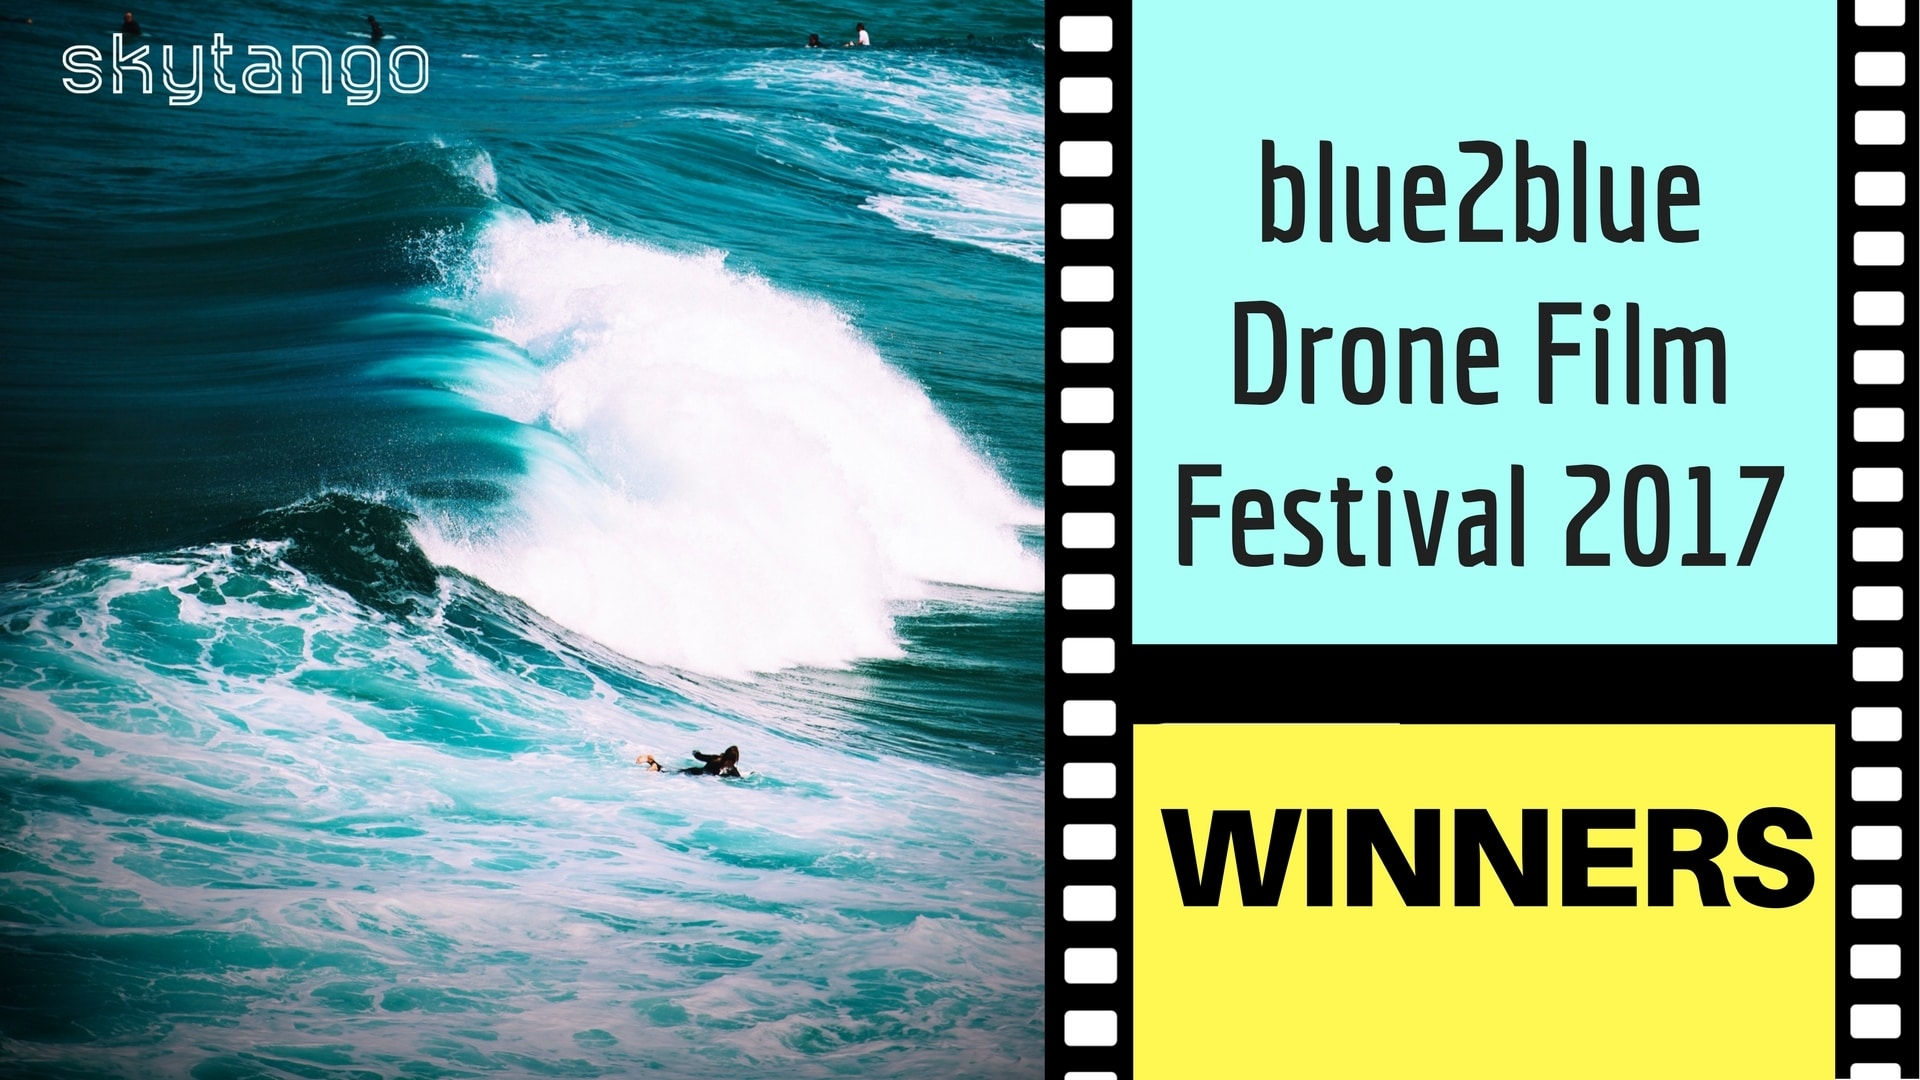 2017 blue2blue Drone Film Festival Winners